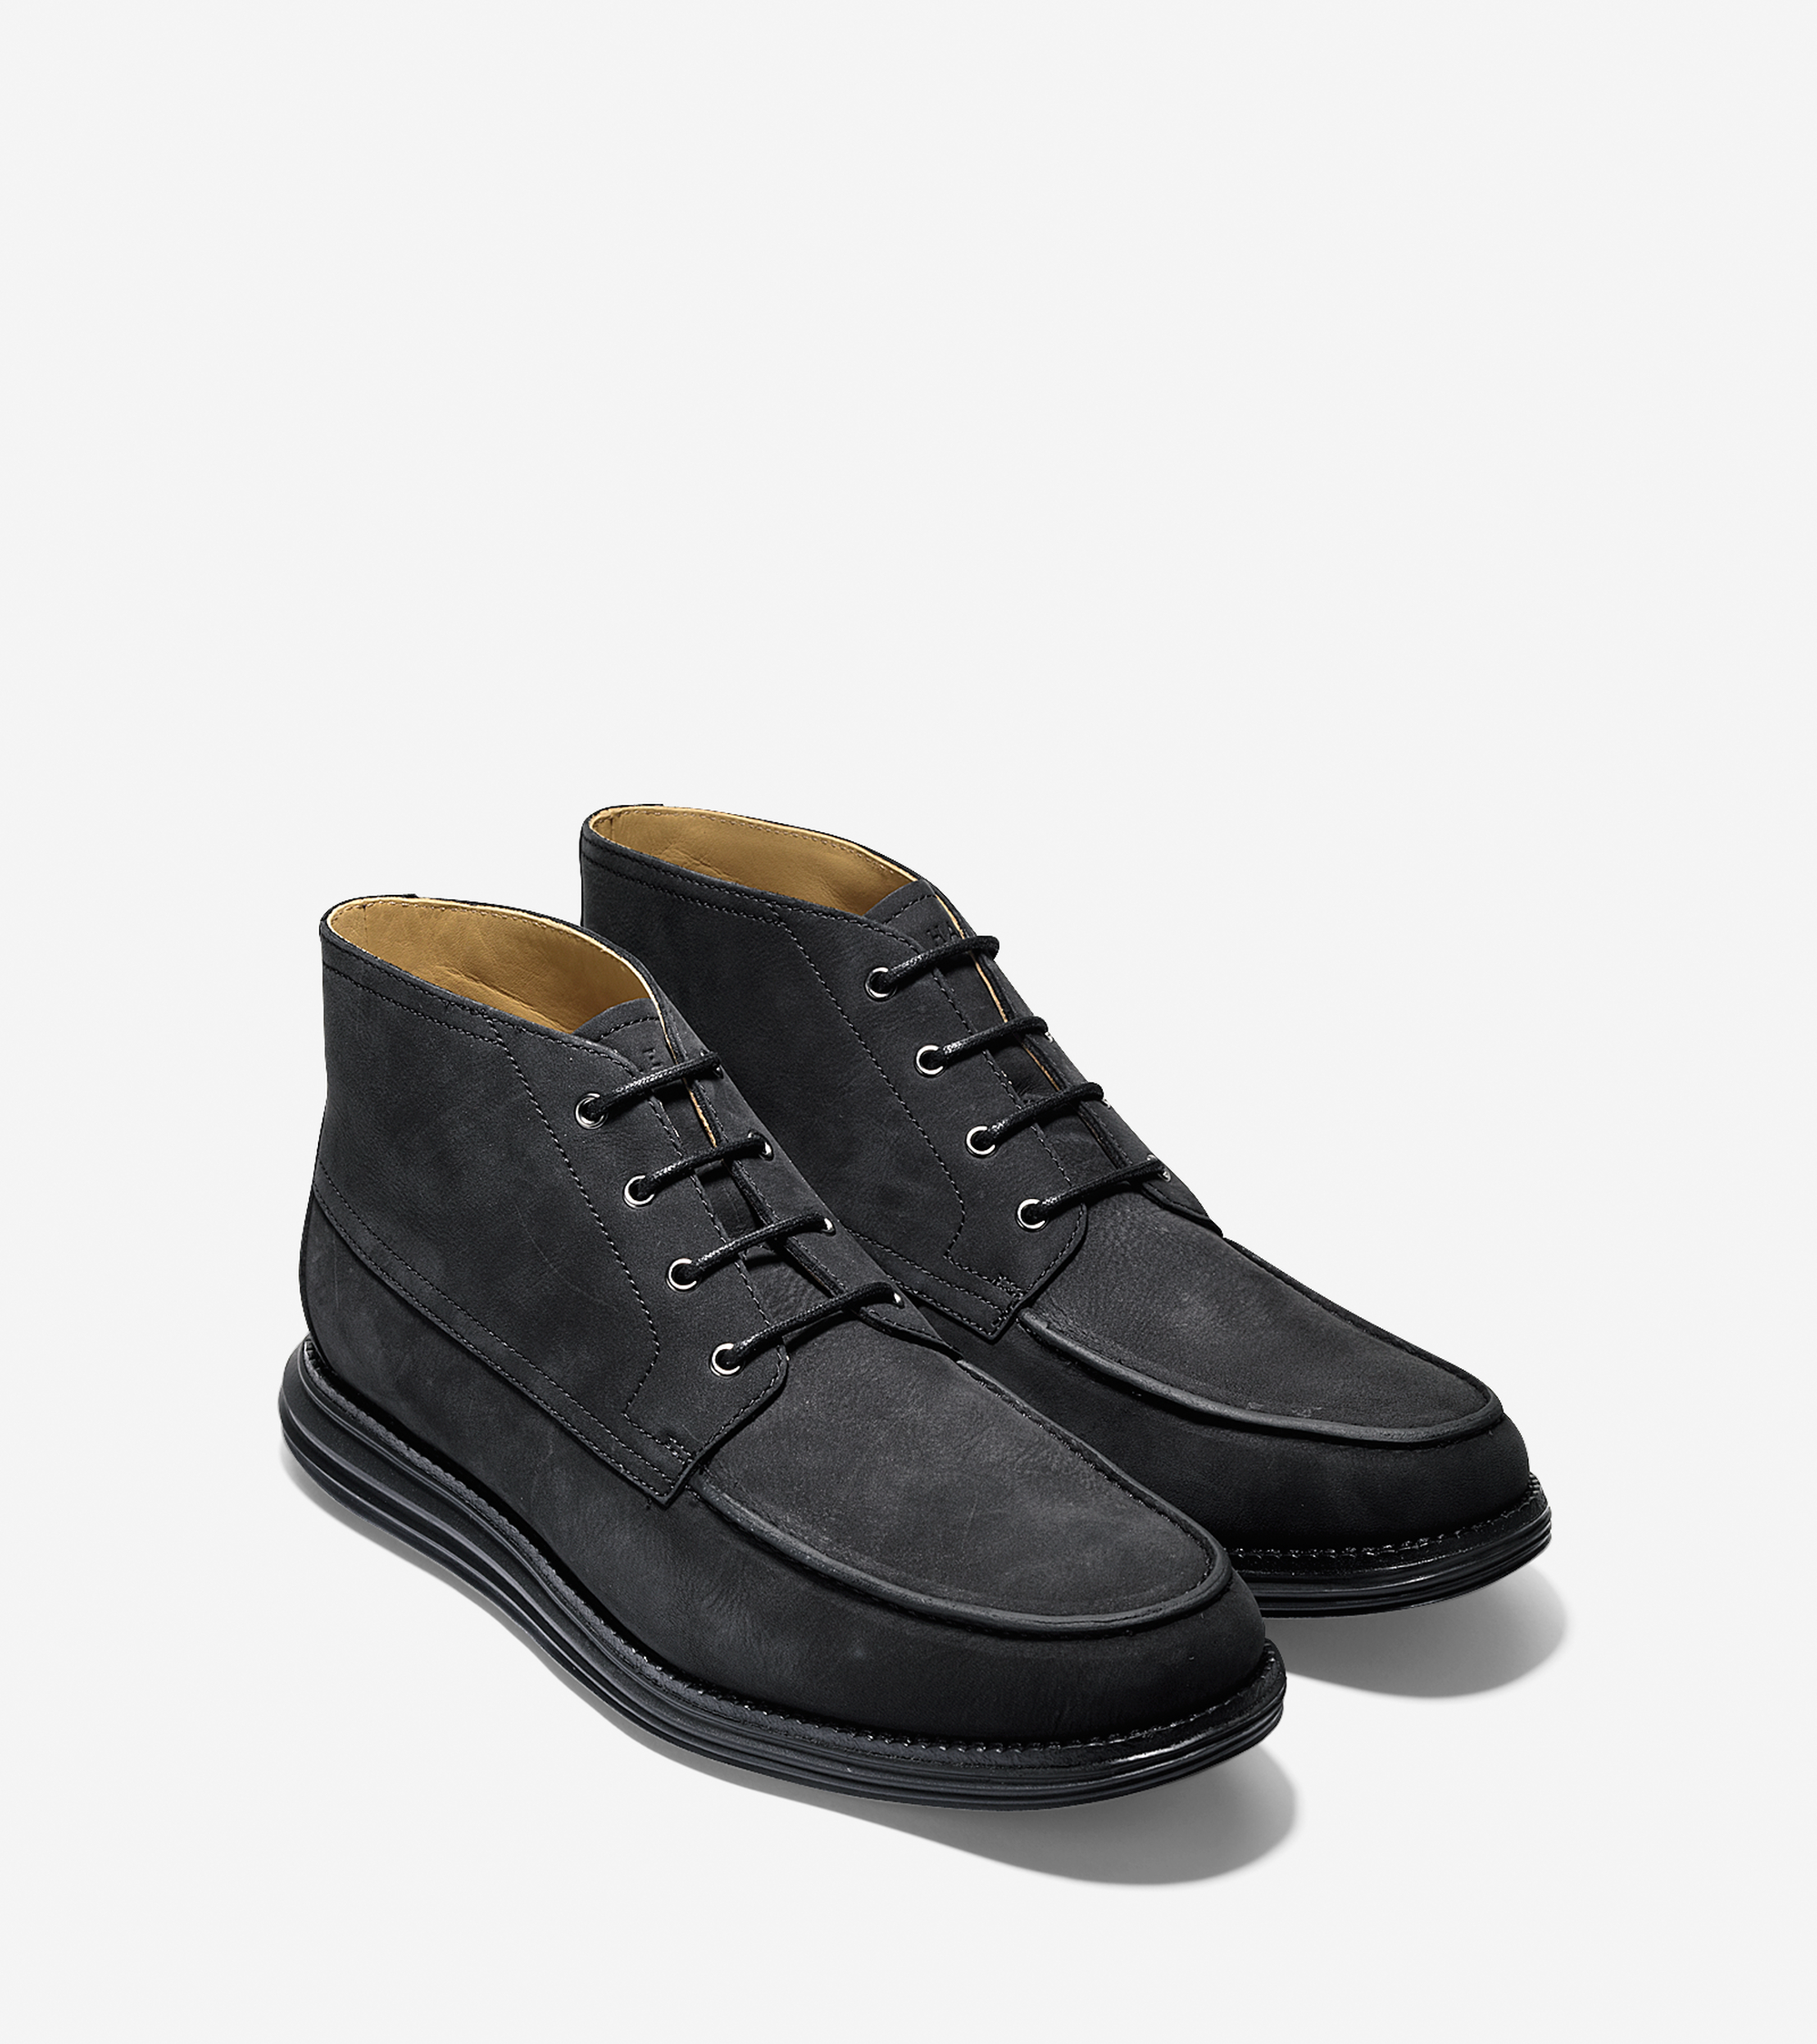 Cole Haan Shoes Suede Boots Womens